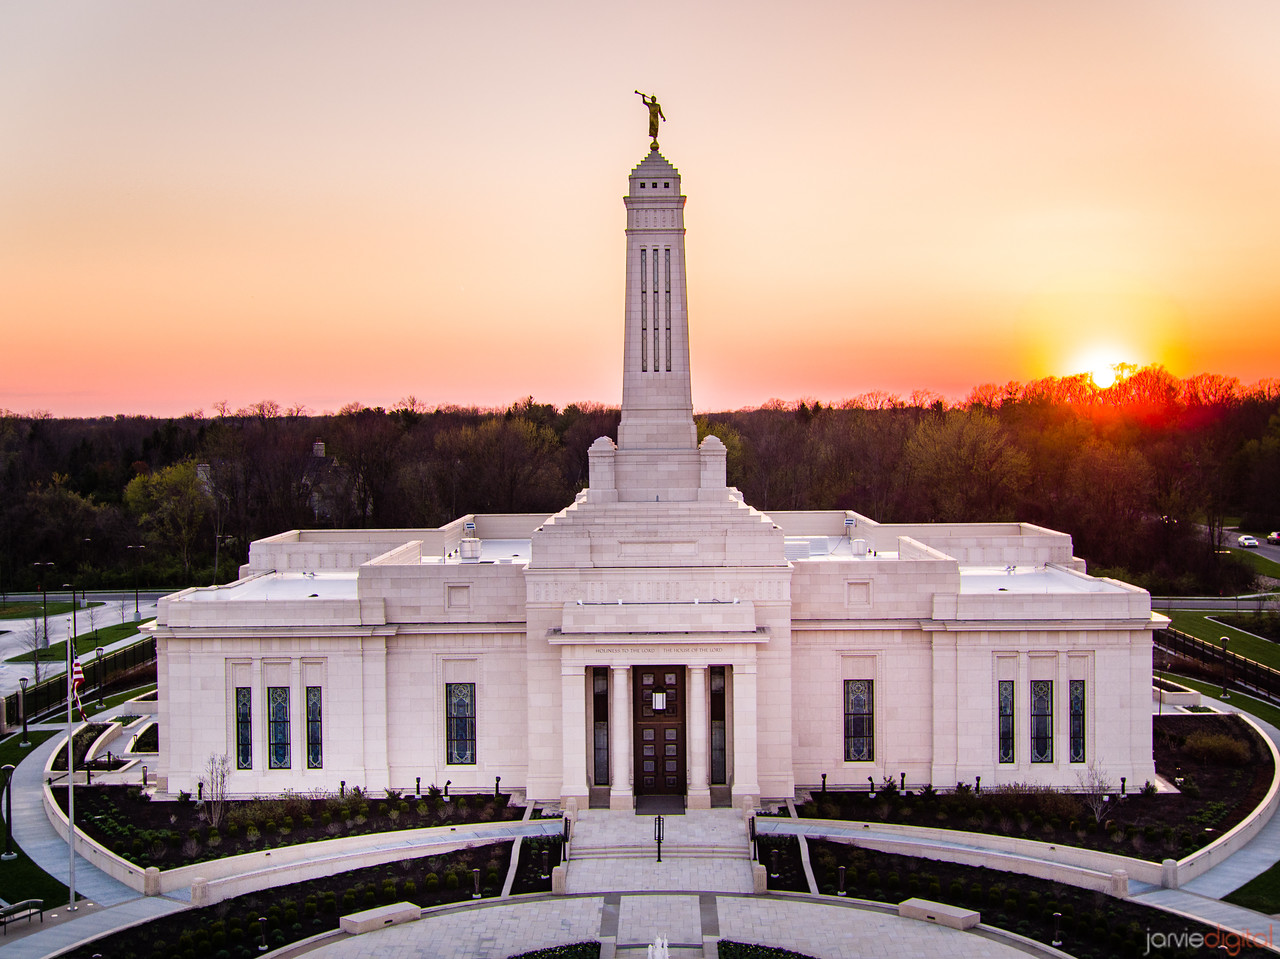 Indianapolis LDS Temple - The setting sun